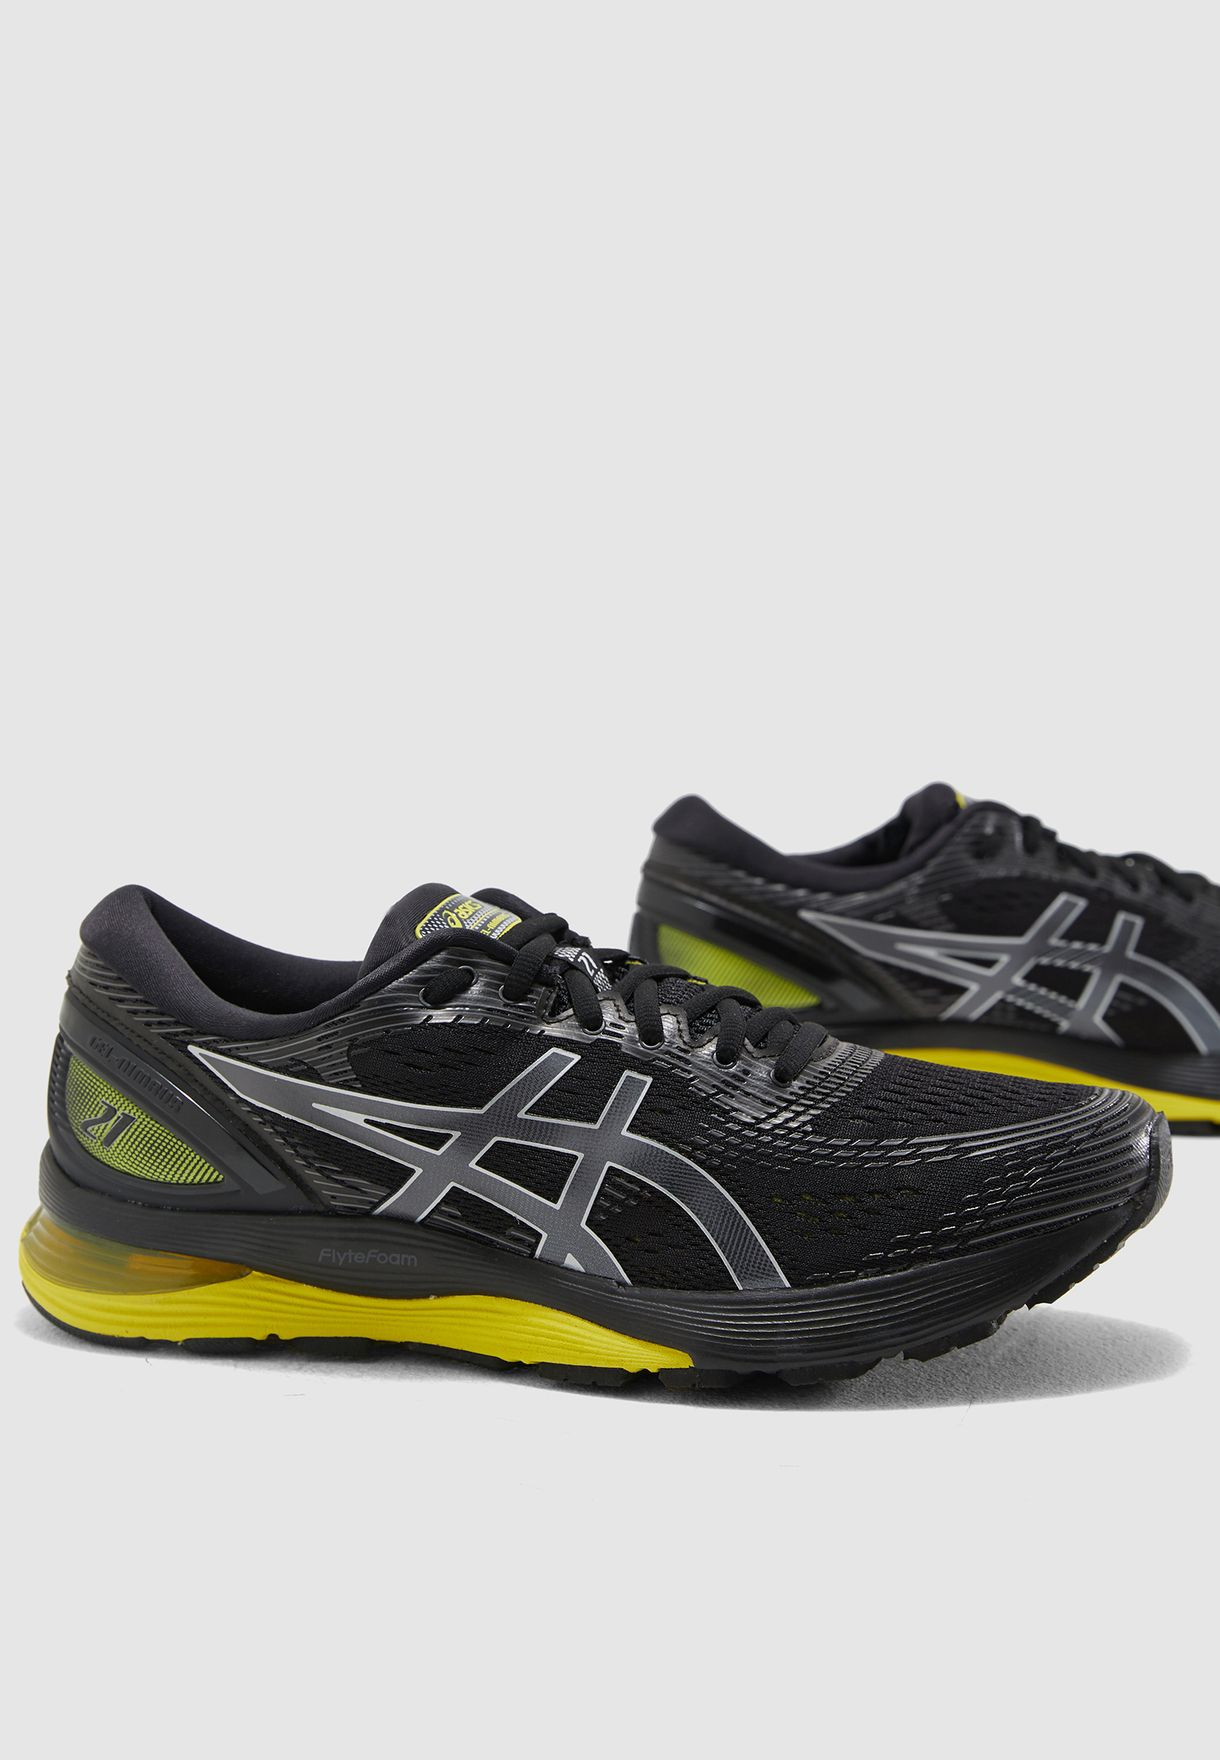 7c03a41d4 Shop Asics black GEL-Nimbus 21 1011A169-003 for Men in UAE ...